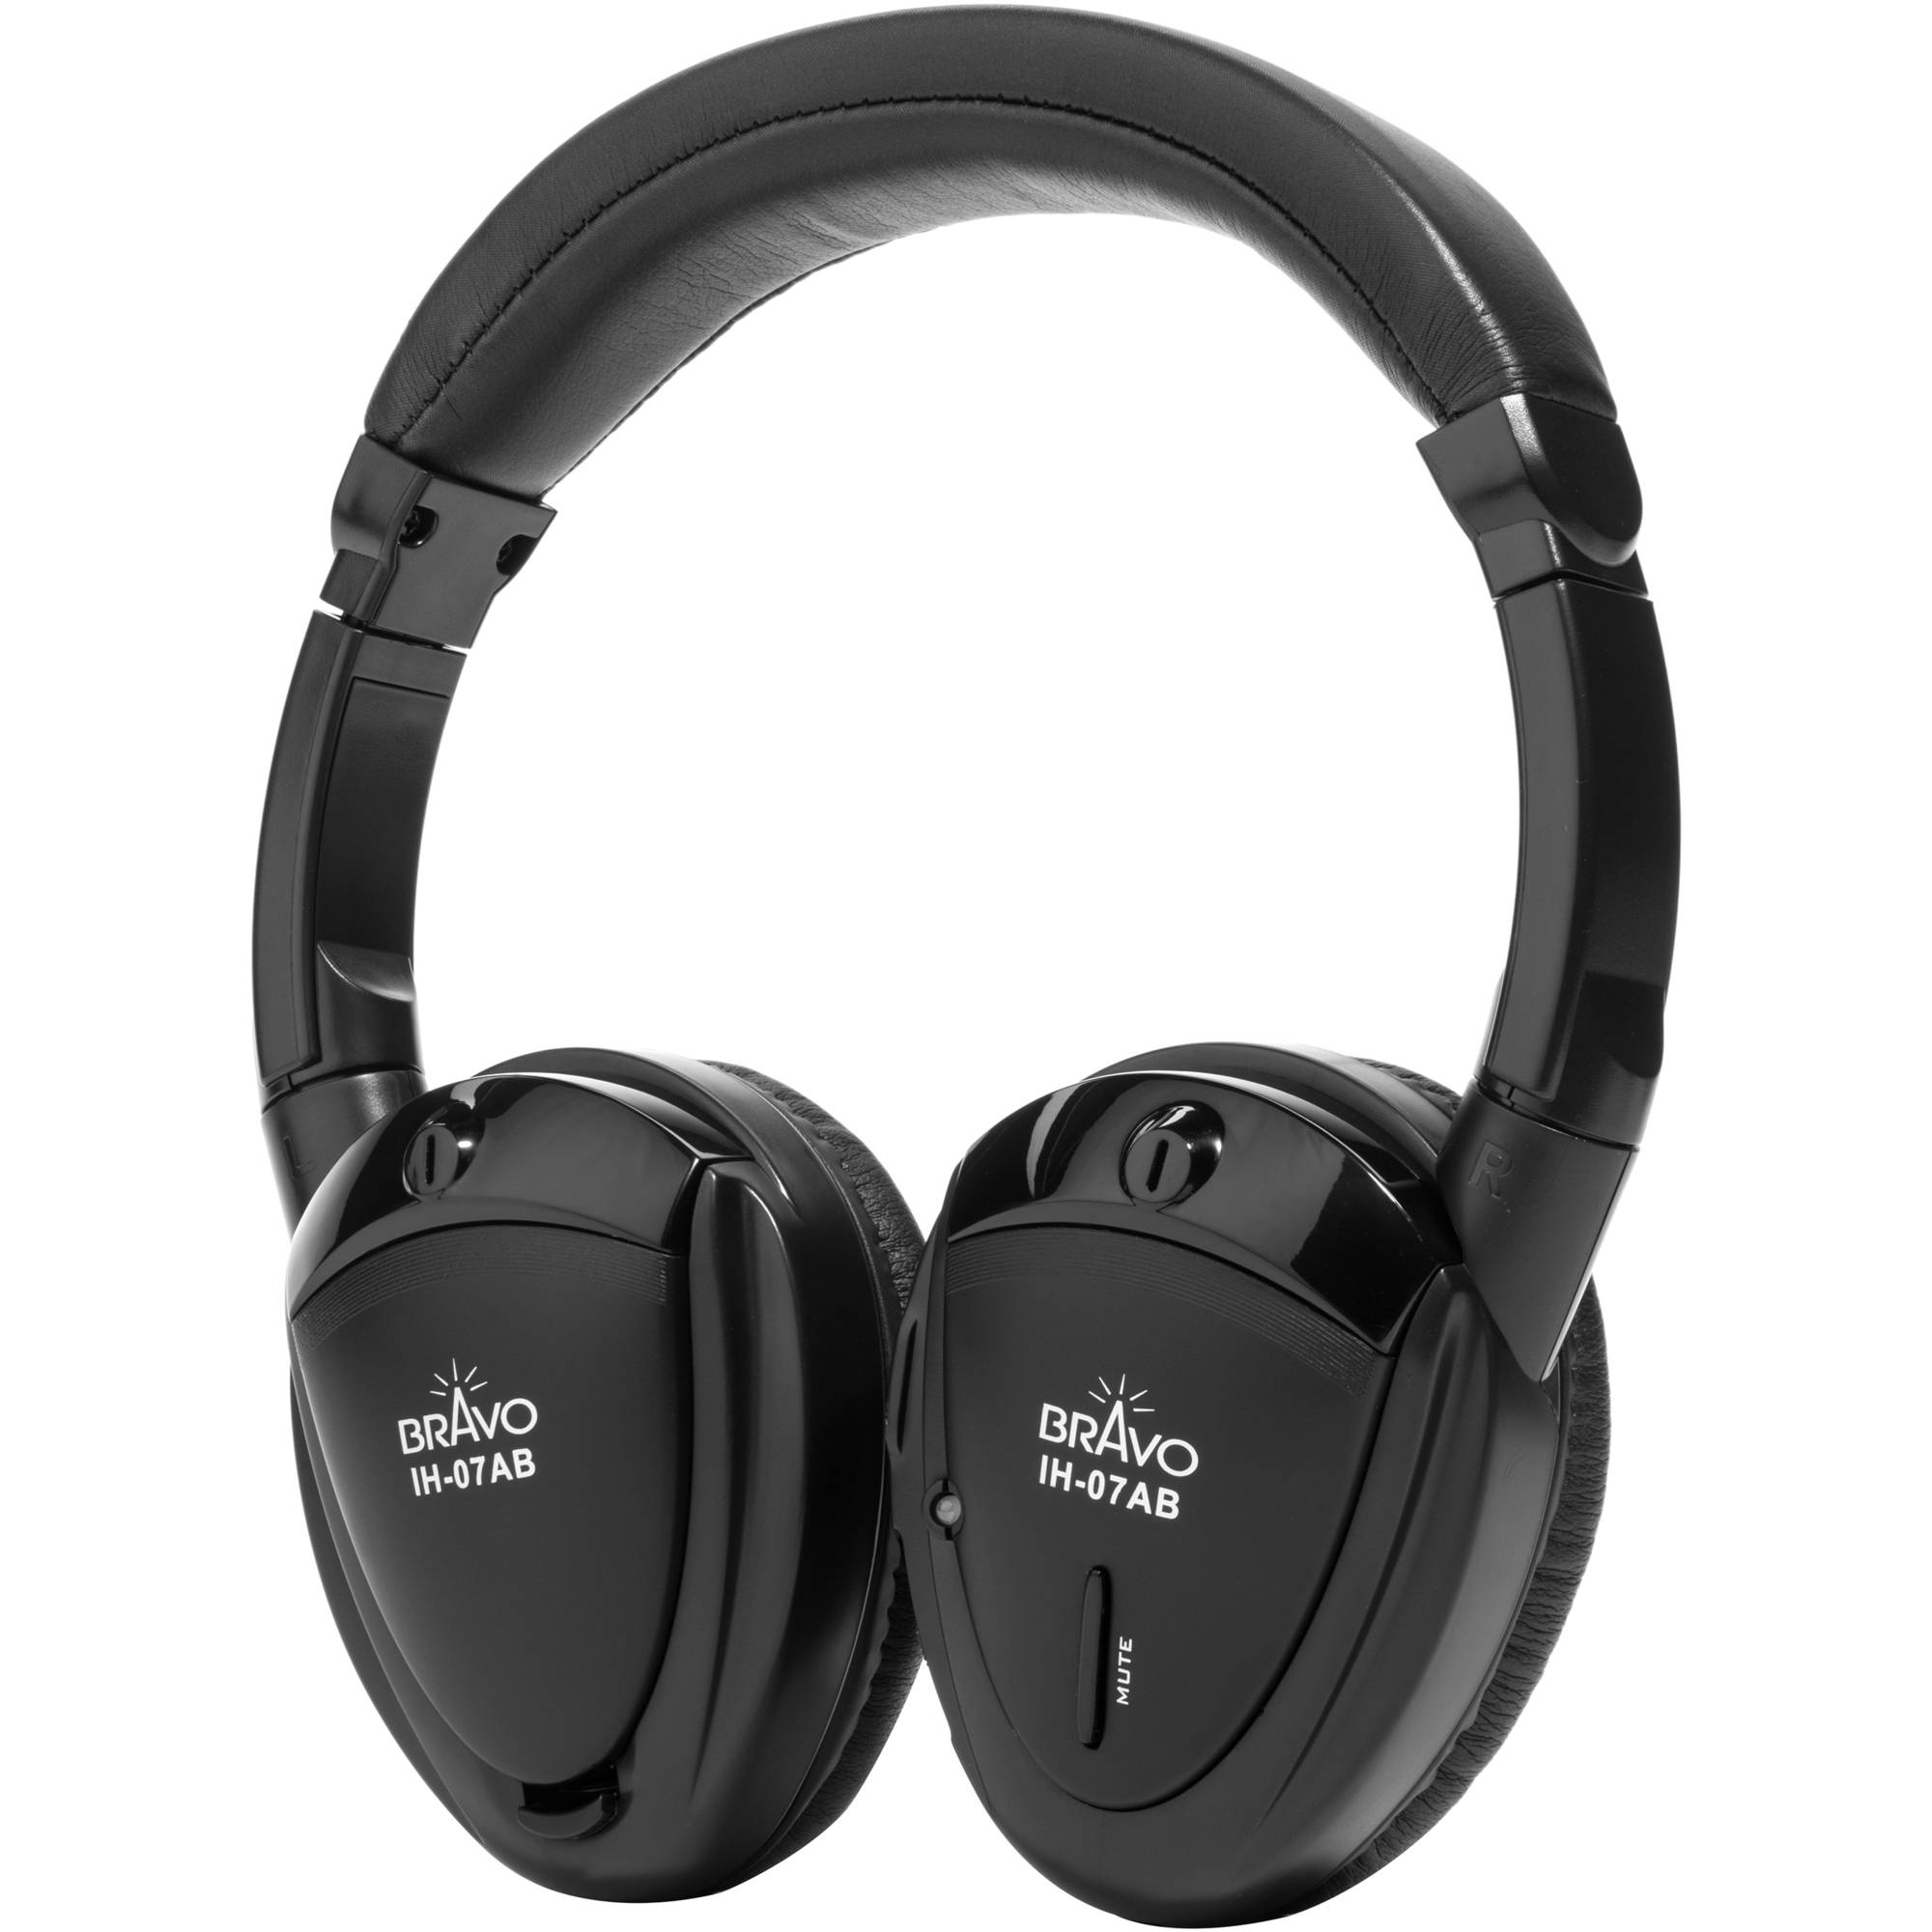 Bravo View IH-07AB DUAL SOURCE Automotive IR Wireless Headphones